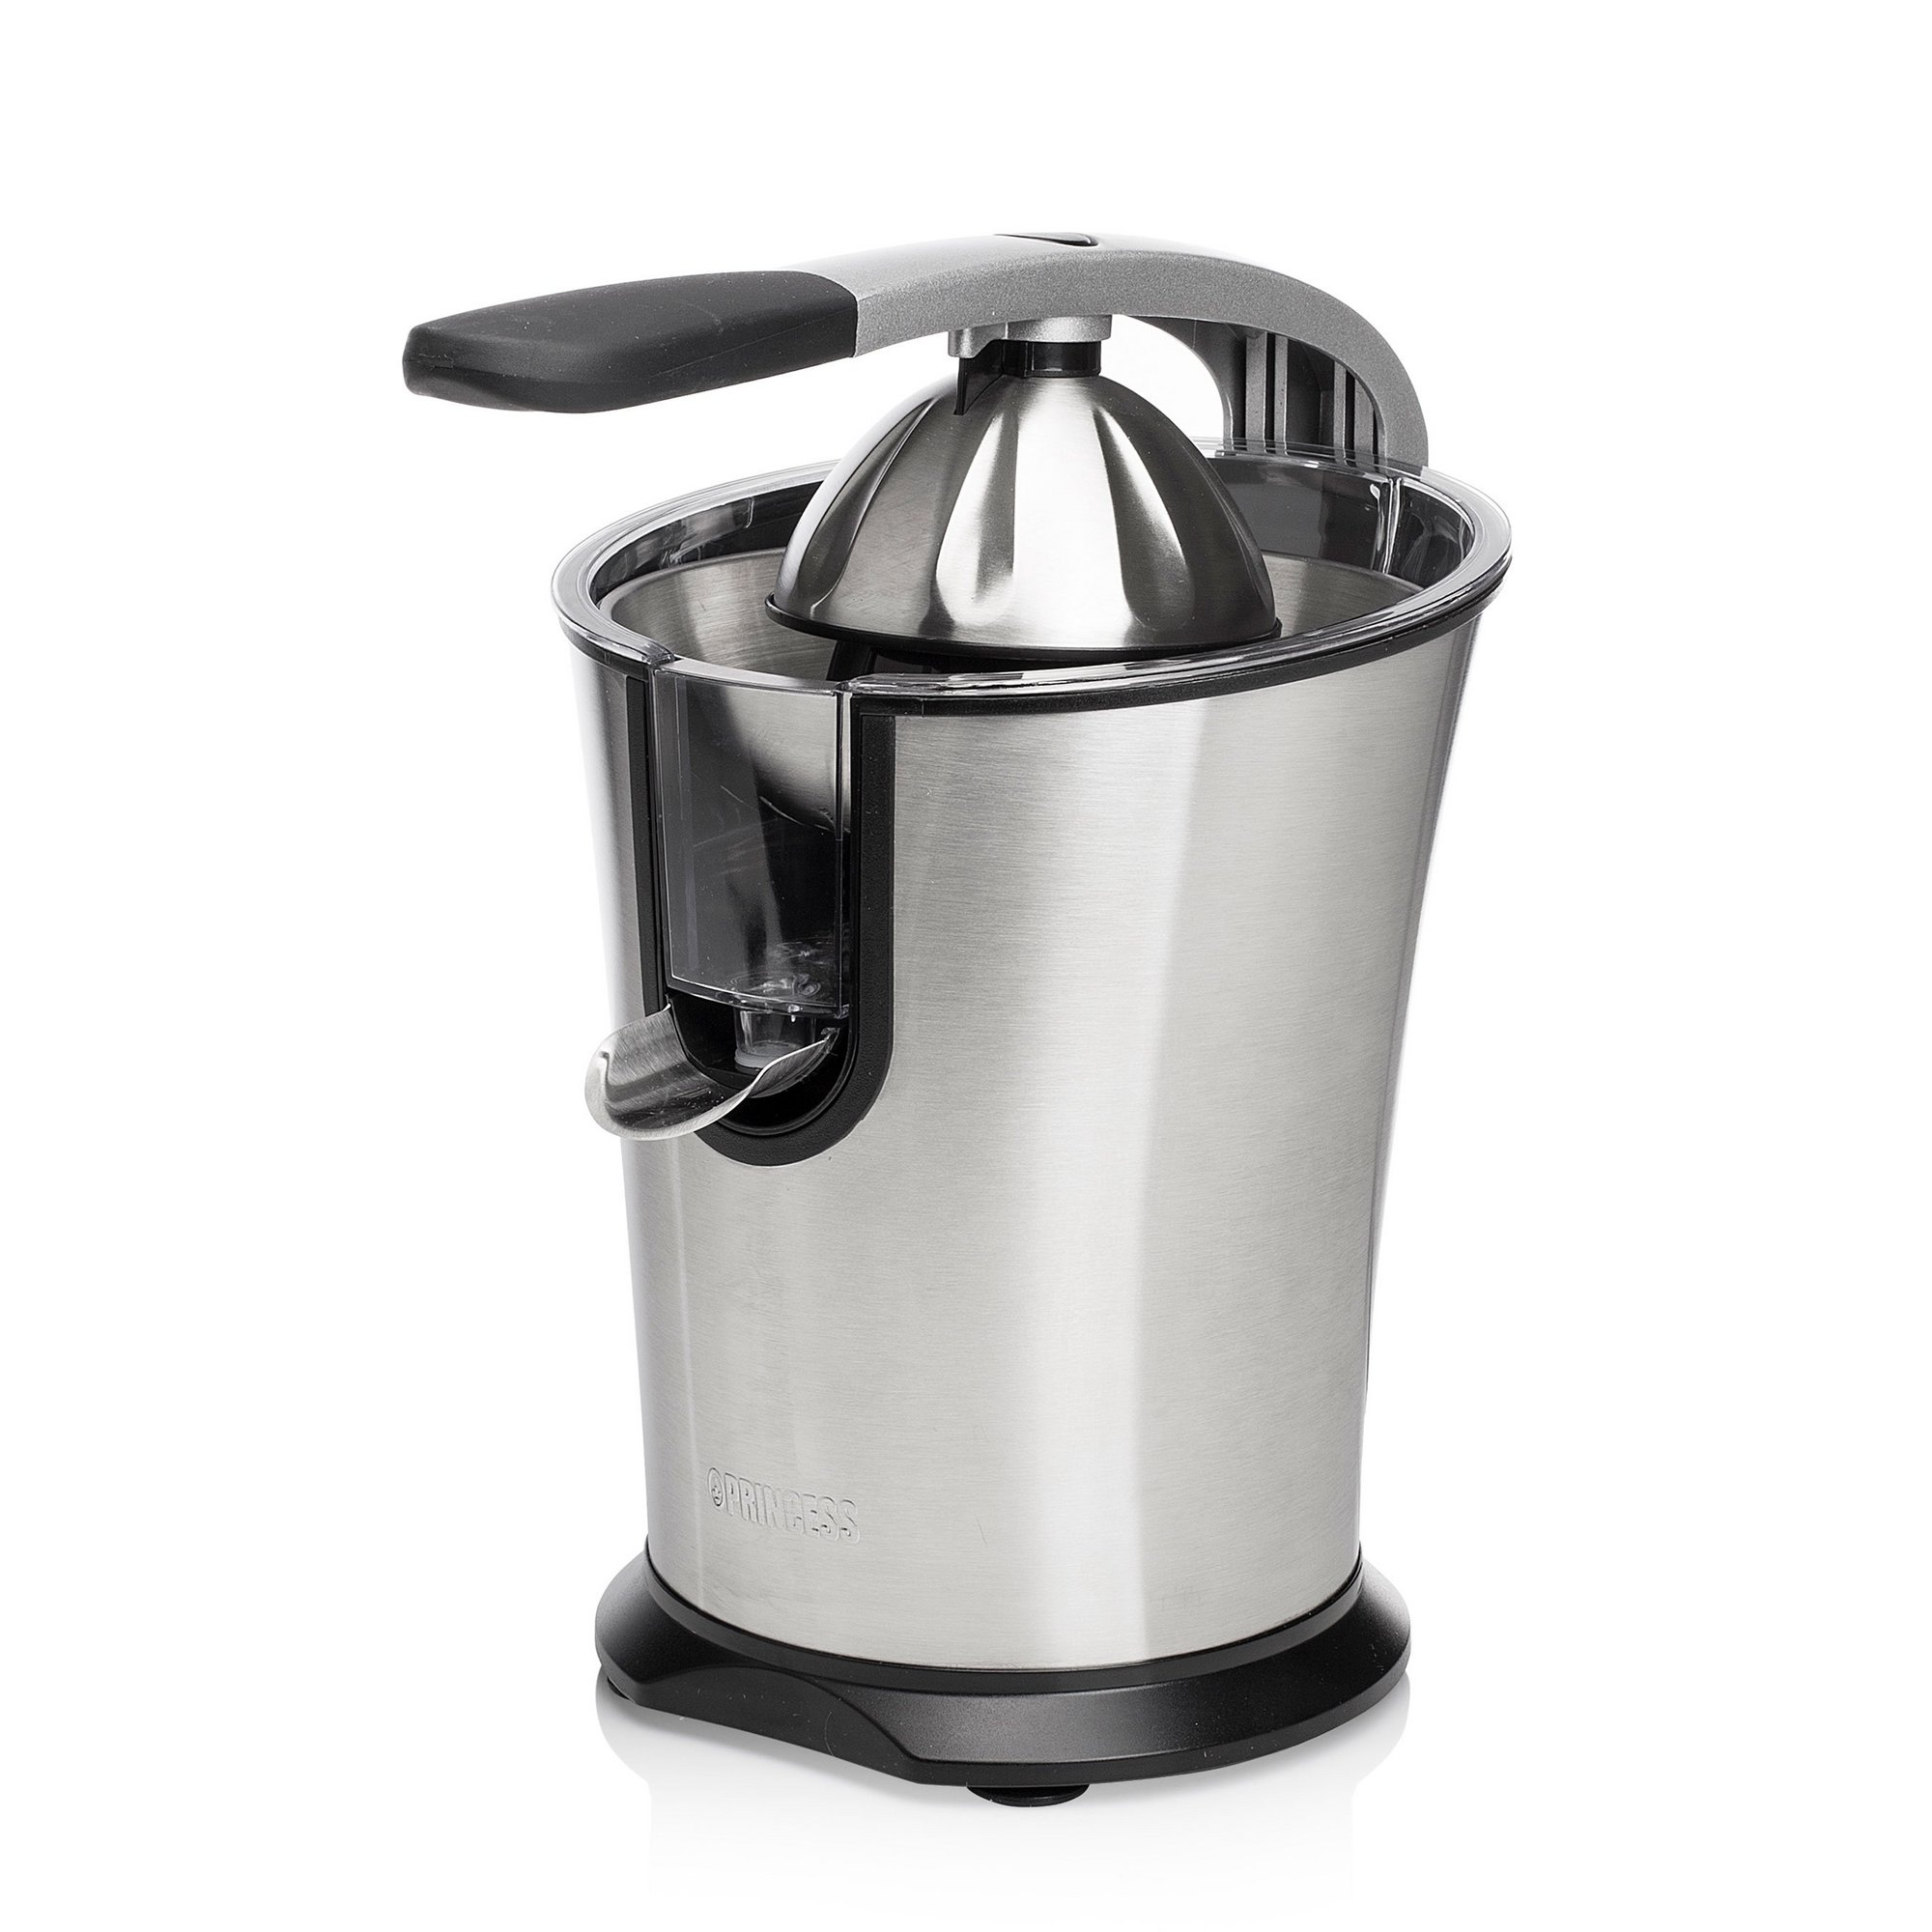 Image of Princess Master Juicer Pro